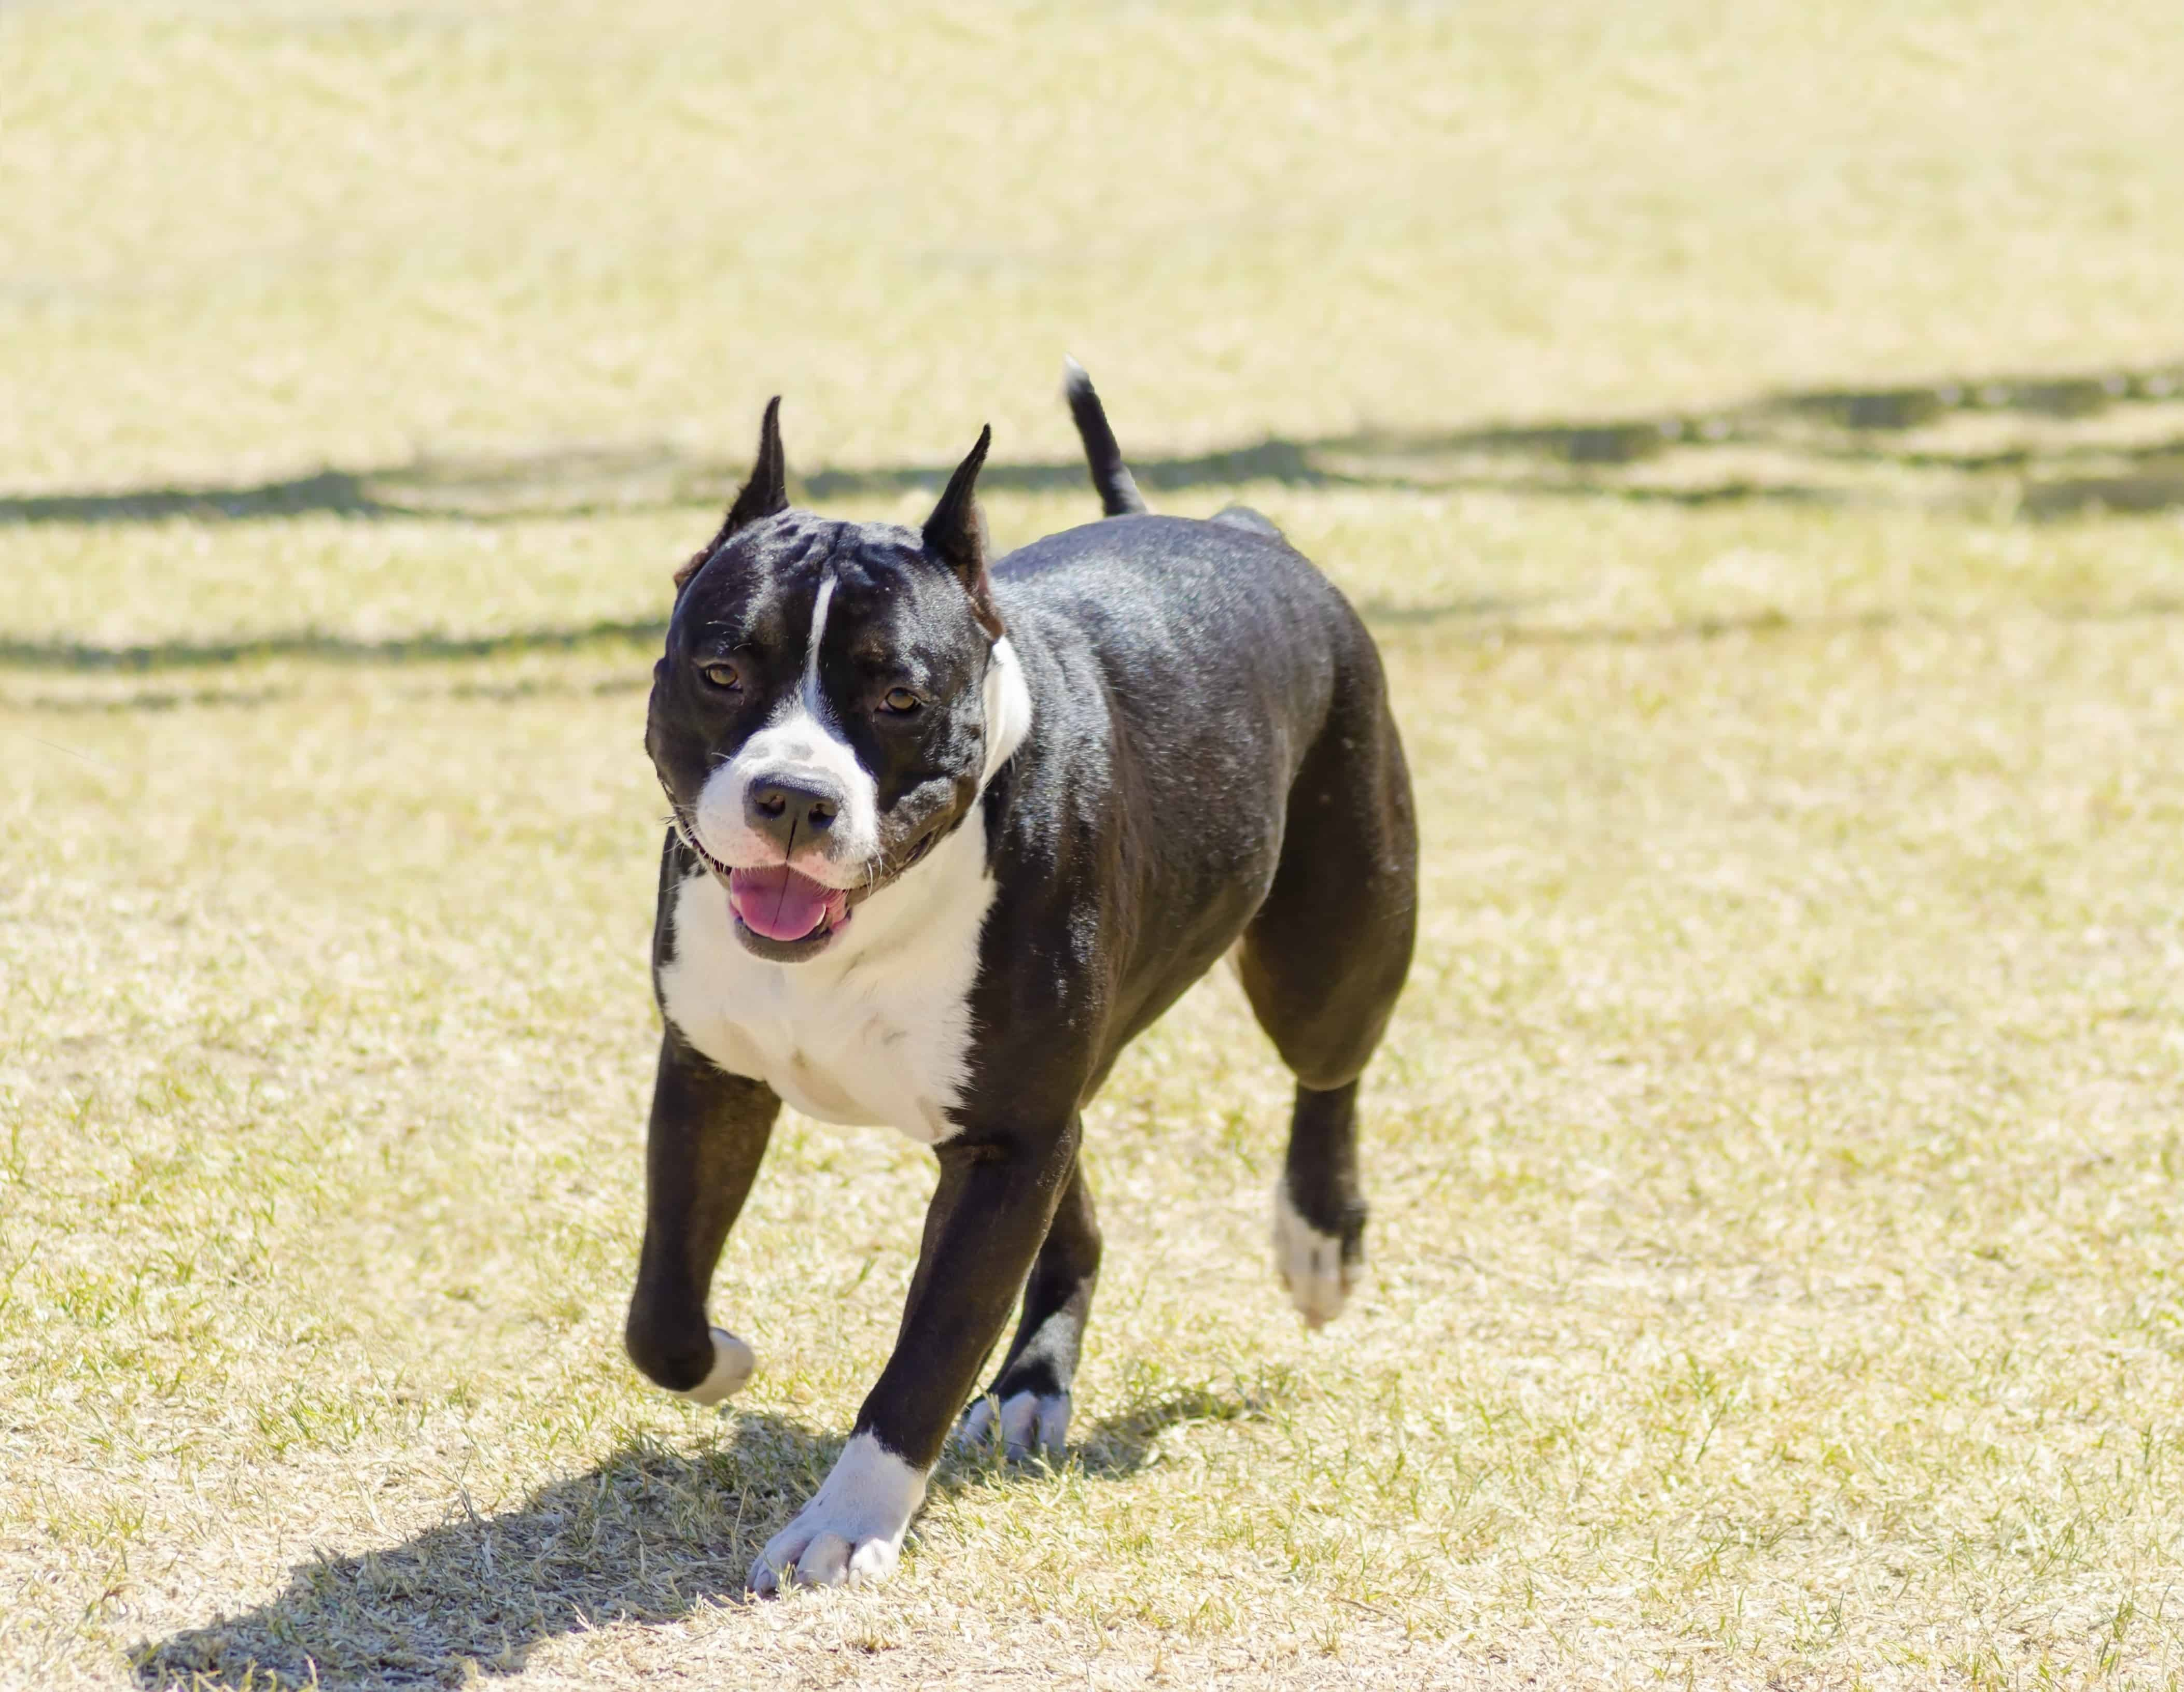 American Bulldog Dog Breed Info, stats (Photos & Videos)